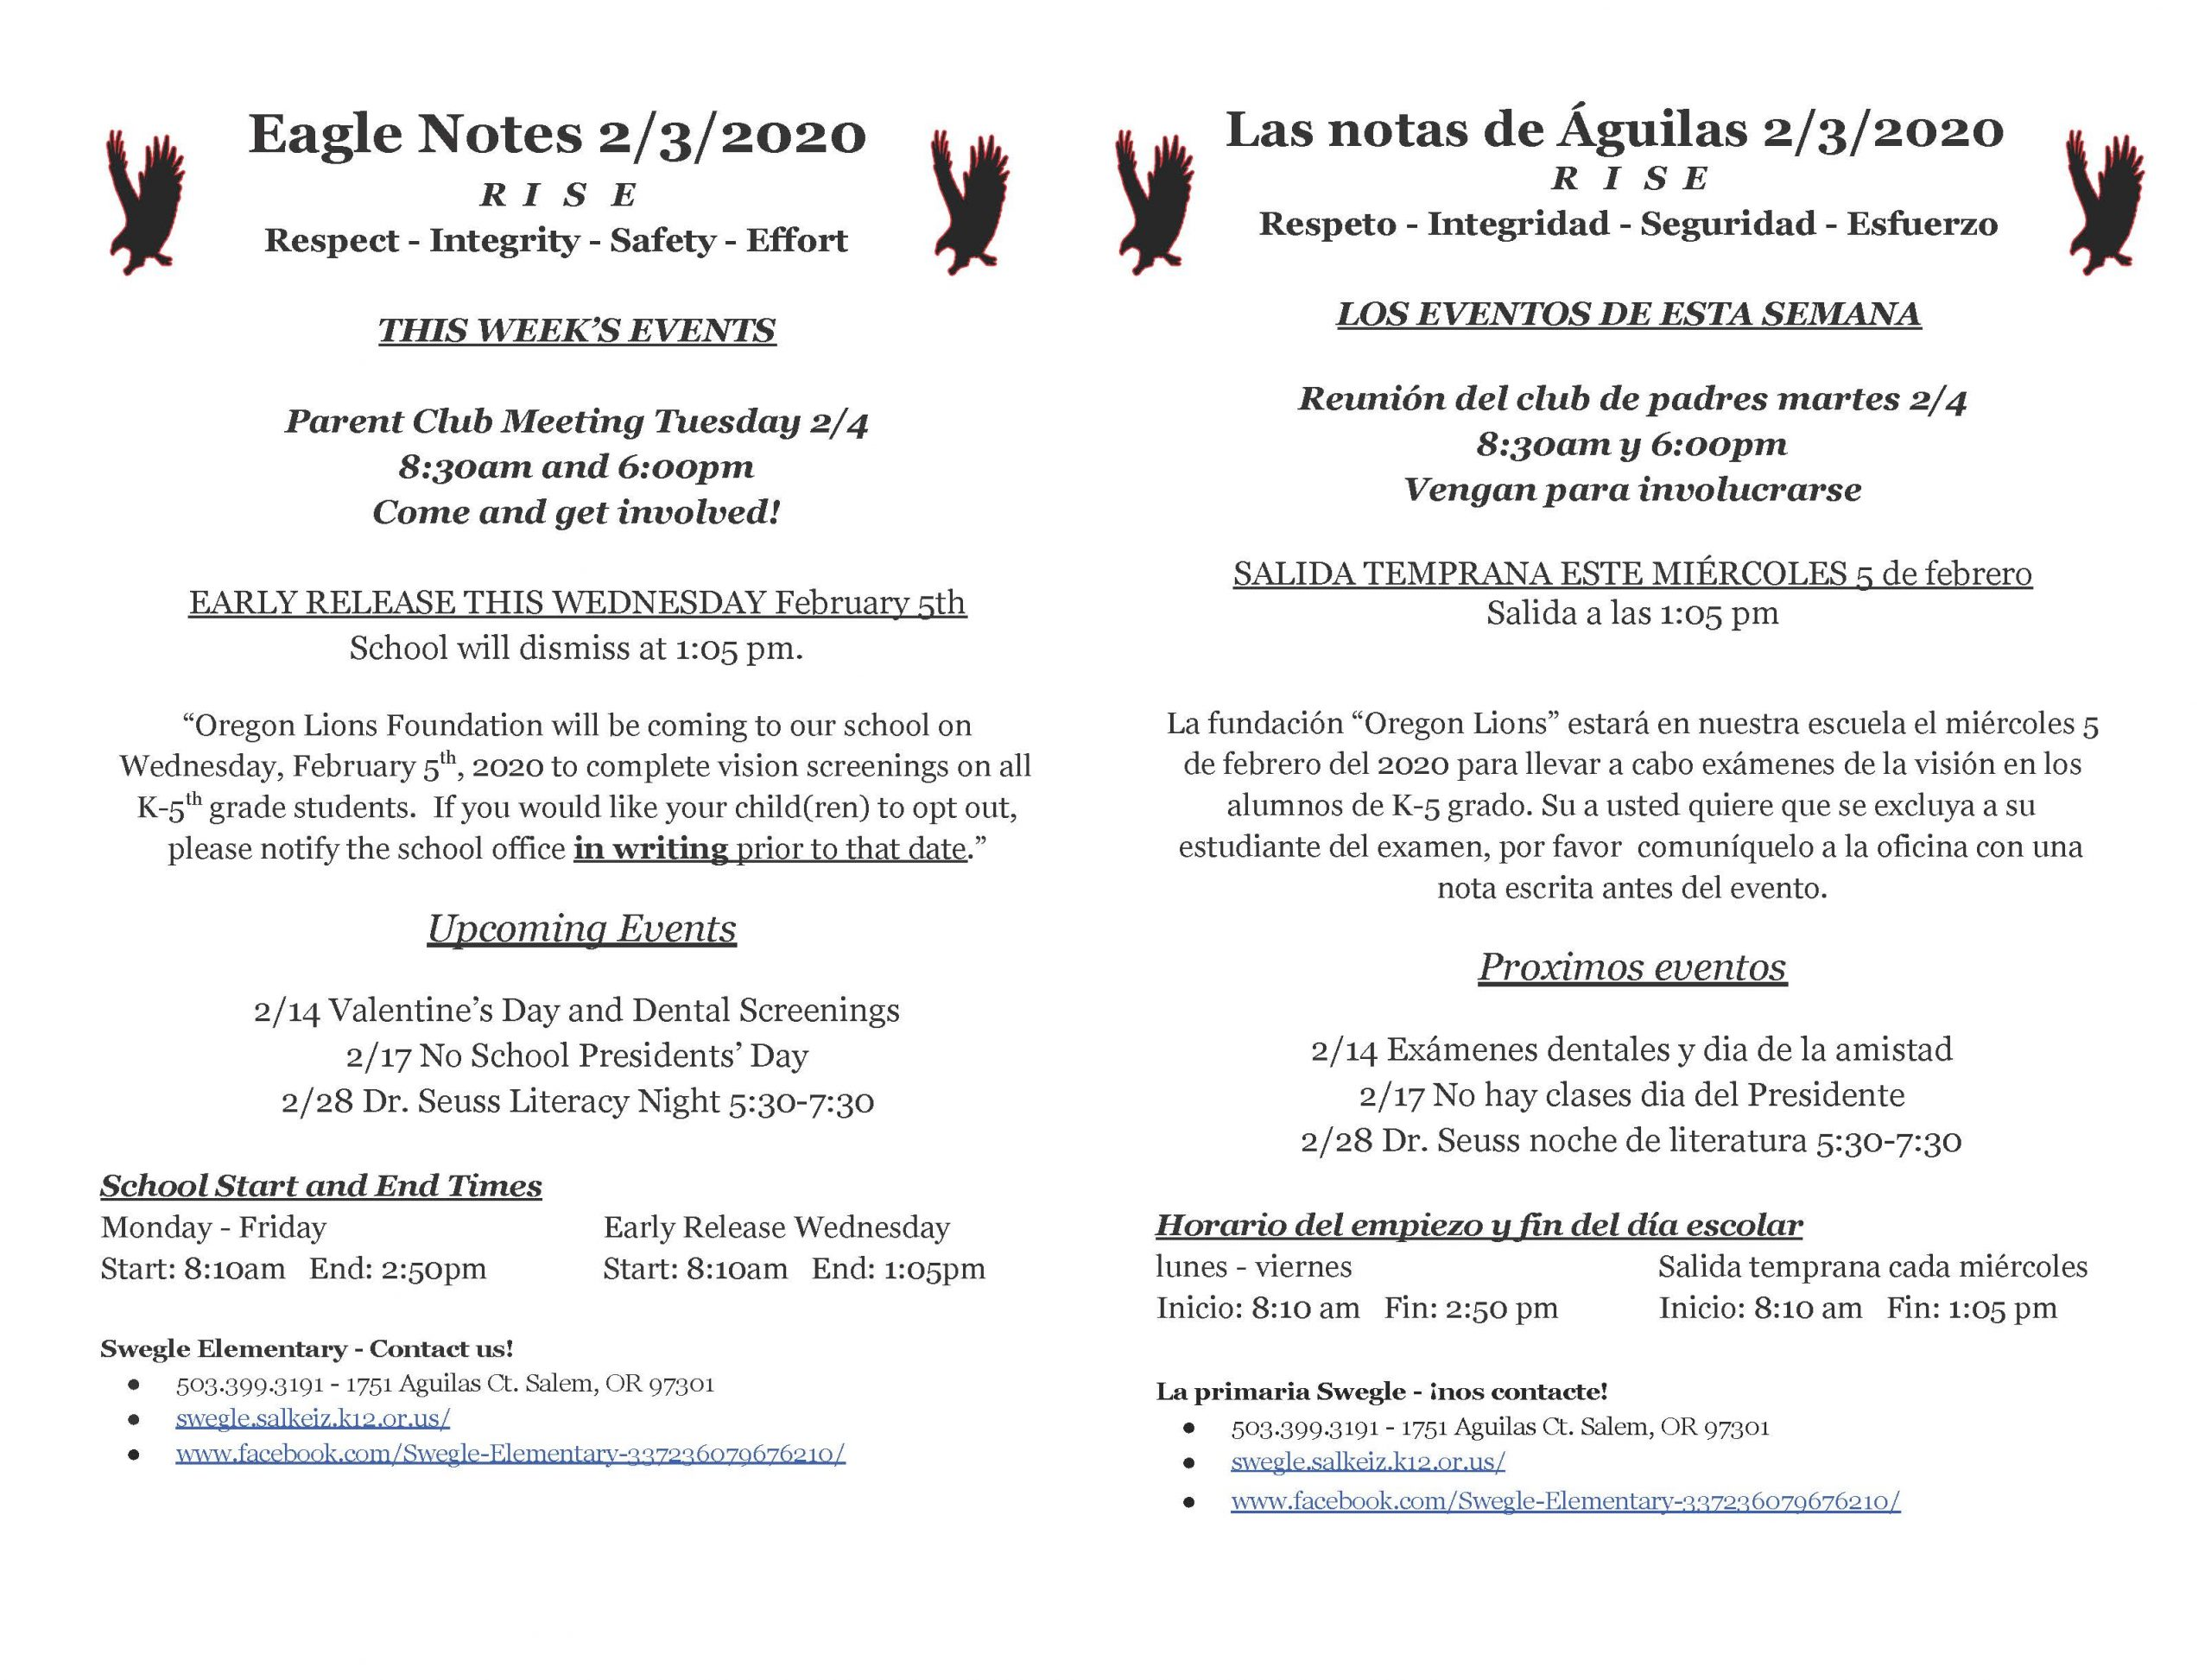 Eagle Notes for the week of 2.3.2020. Please call the office for more information at 503.399.3191